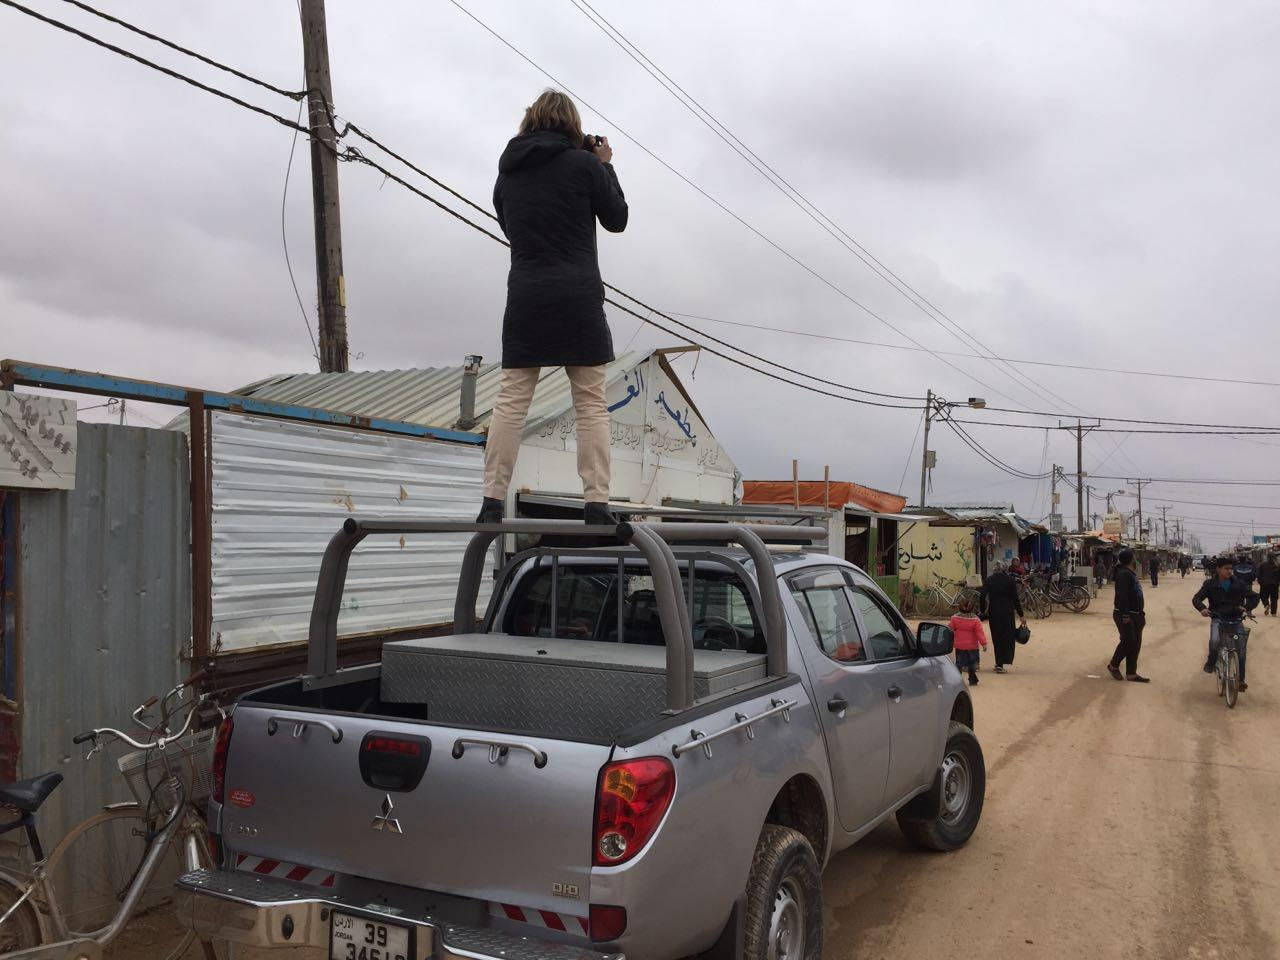 VPR's Nina Keck at the Zaatari refugee camp in Jordan, where over 80,000 Syrian refugees live.